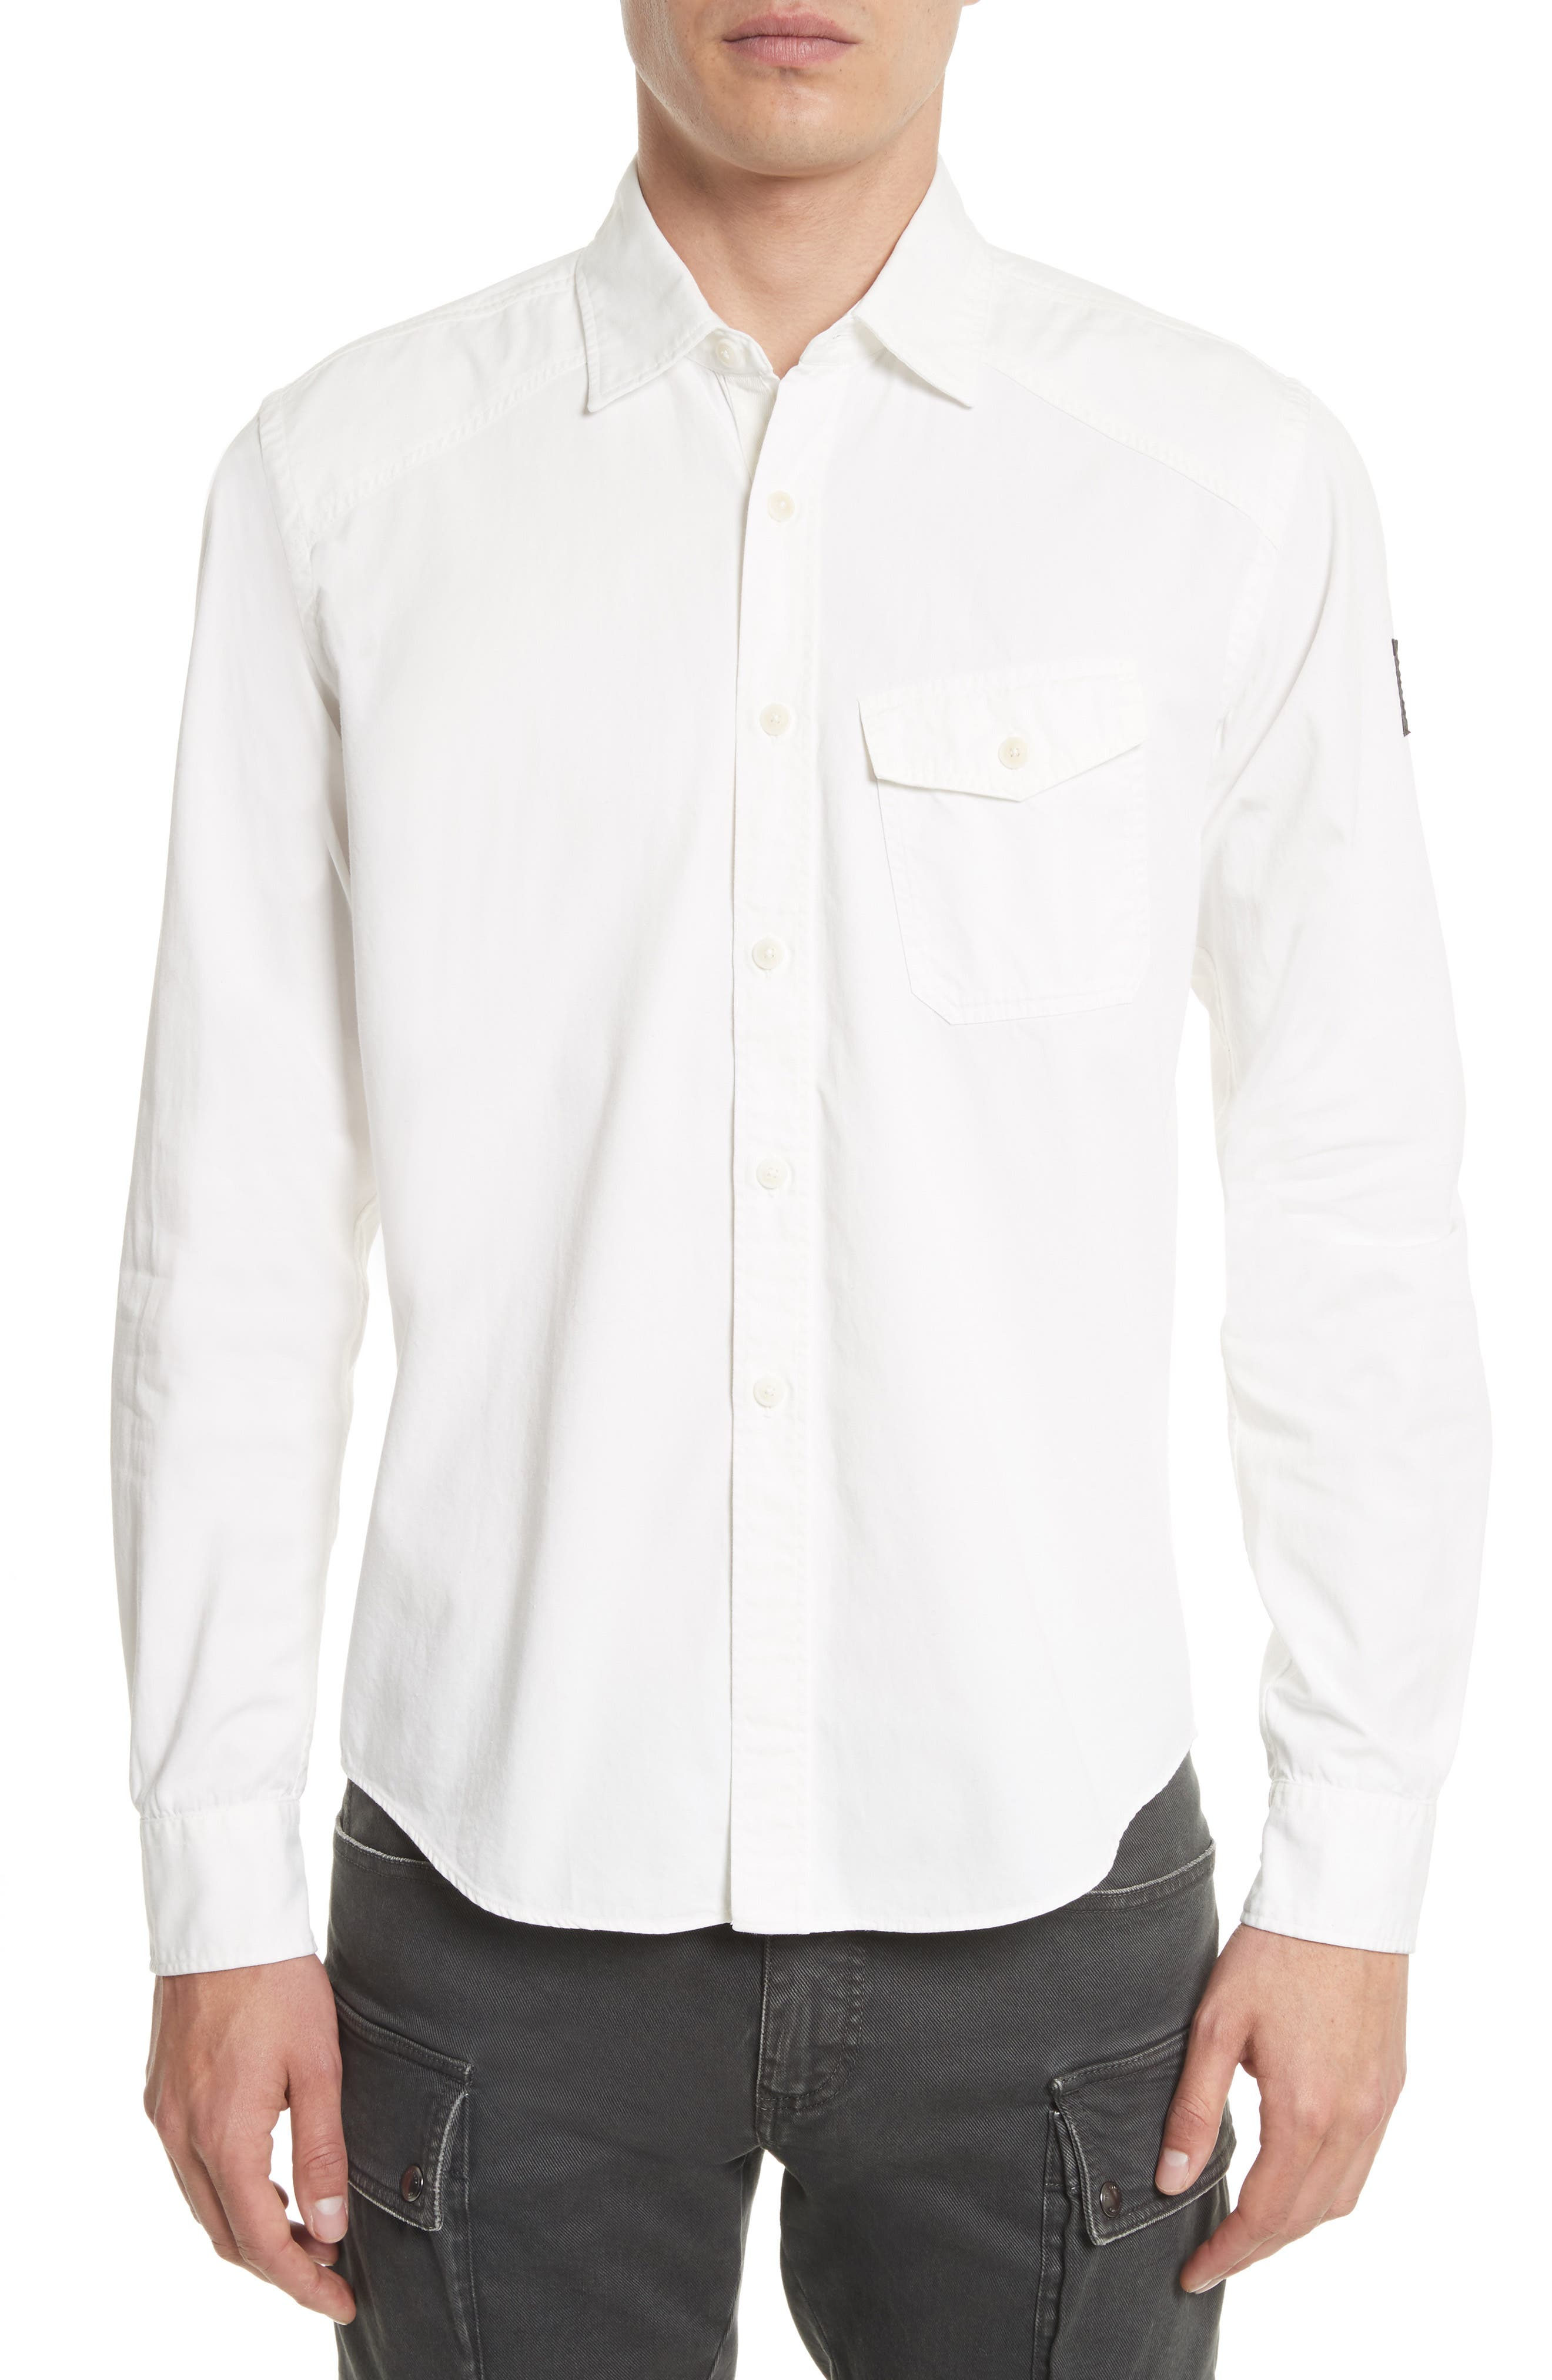 Steadway Extra Slim Fit Sport Shirt,                             Main thumbnail 2, color,